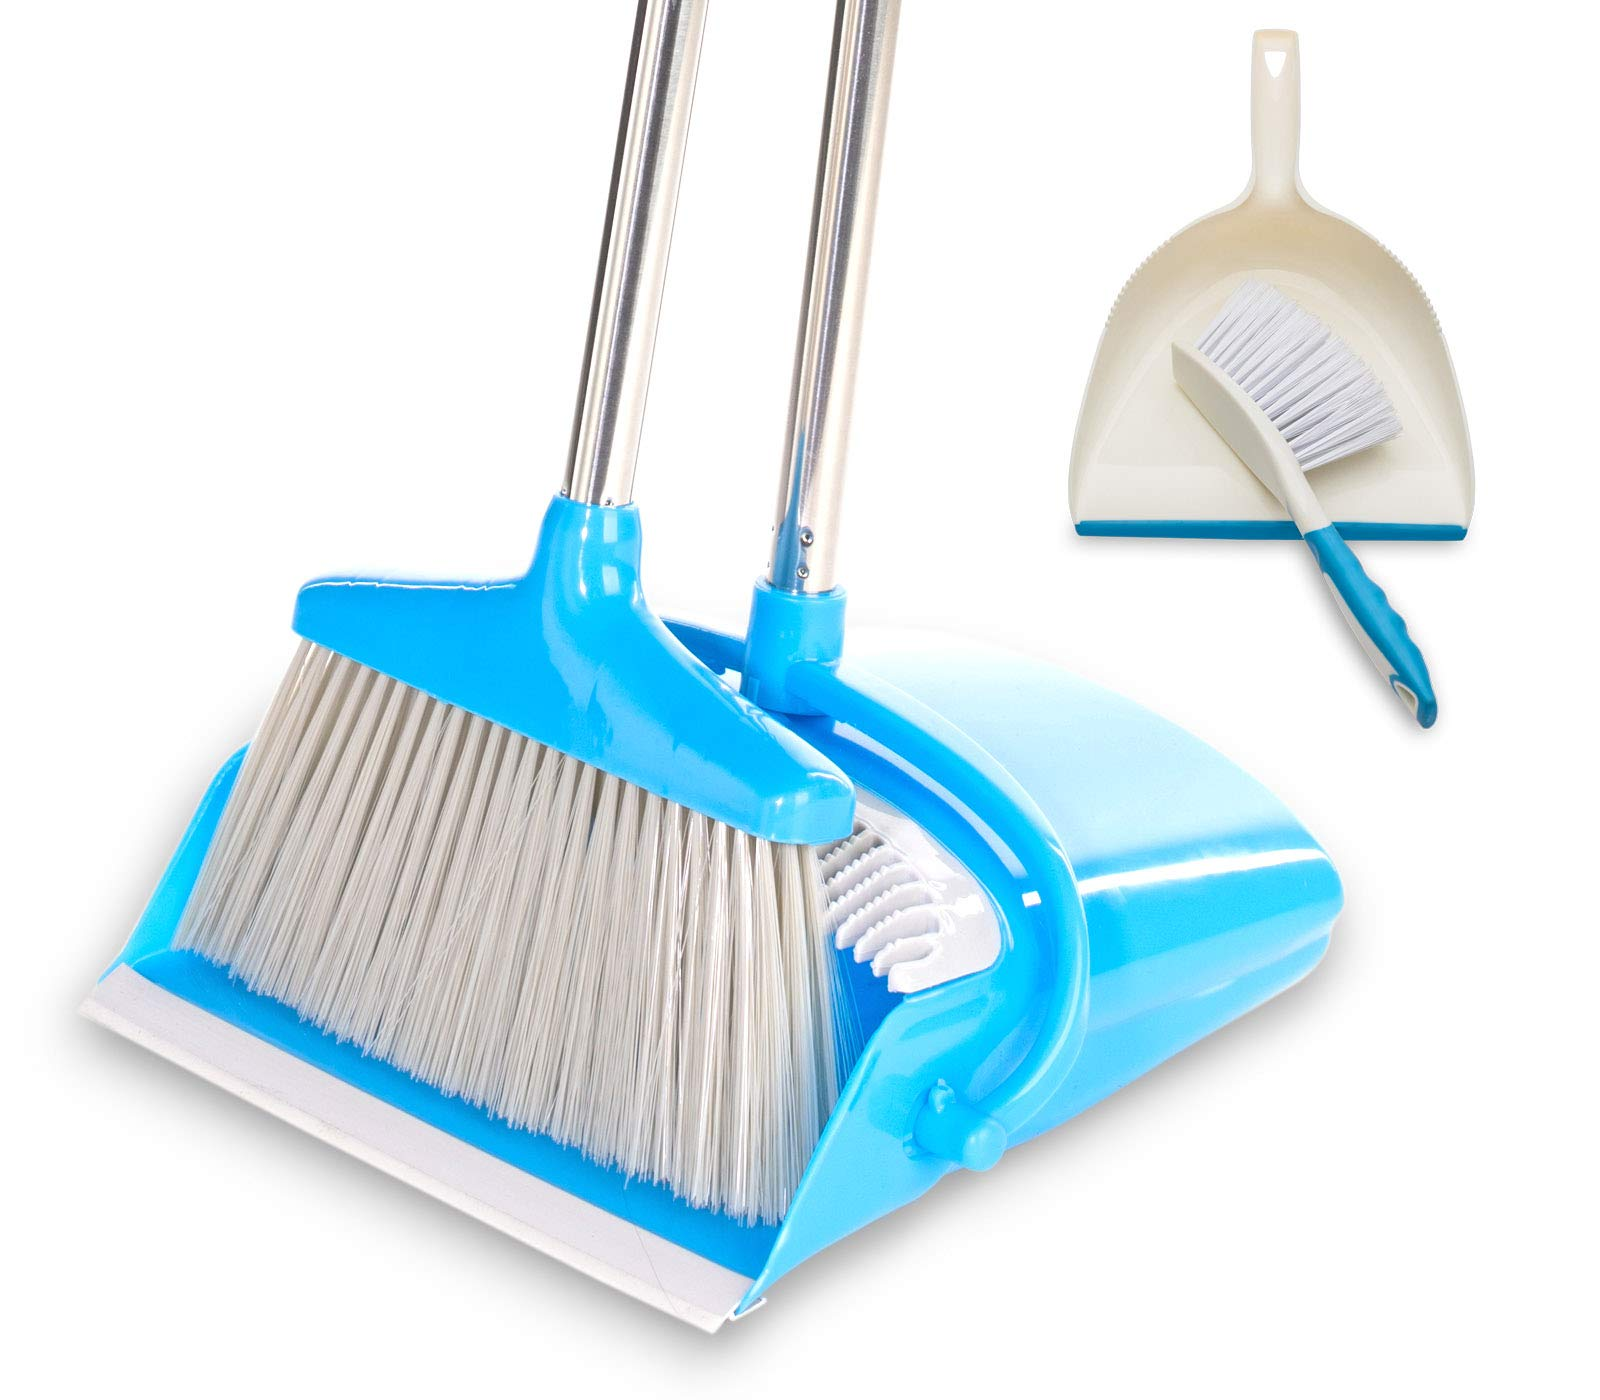 BristleComb Broom and Dustpan Set - Variable Handle Length Broom and Dustpan - Includes: Hand Brush and Dustpan Combo - Lightweight and Upright Stand for Cleaning Your Kitchen, Home, and Lobby (Blue) by JFB Home Products